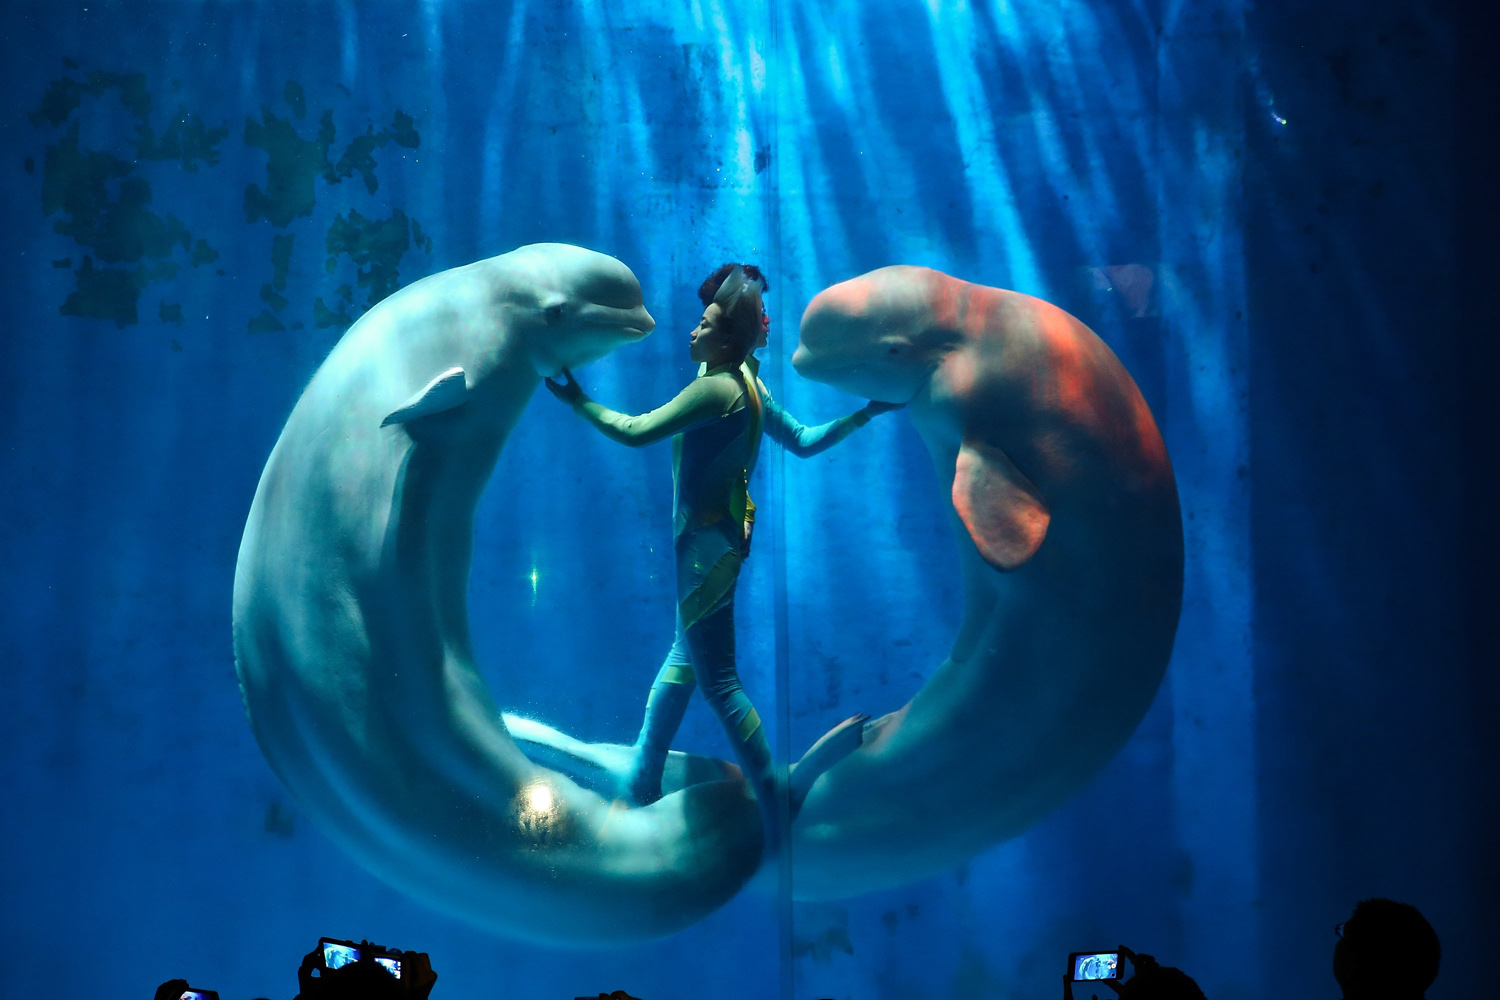 Jan. 7, 2014. White whales and their trainers present a show for visitors at Harbin Pole Aquarium in Harbin, China.